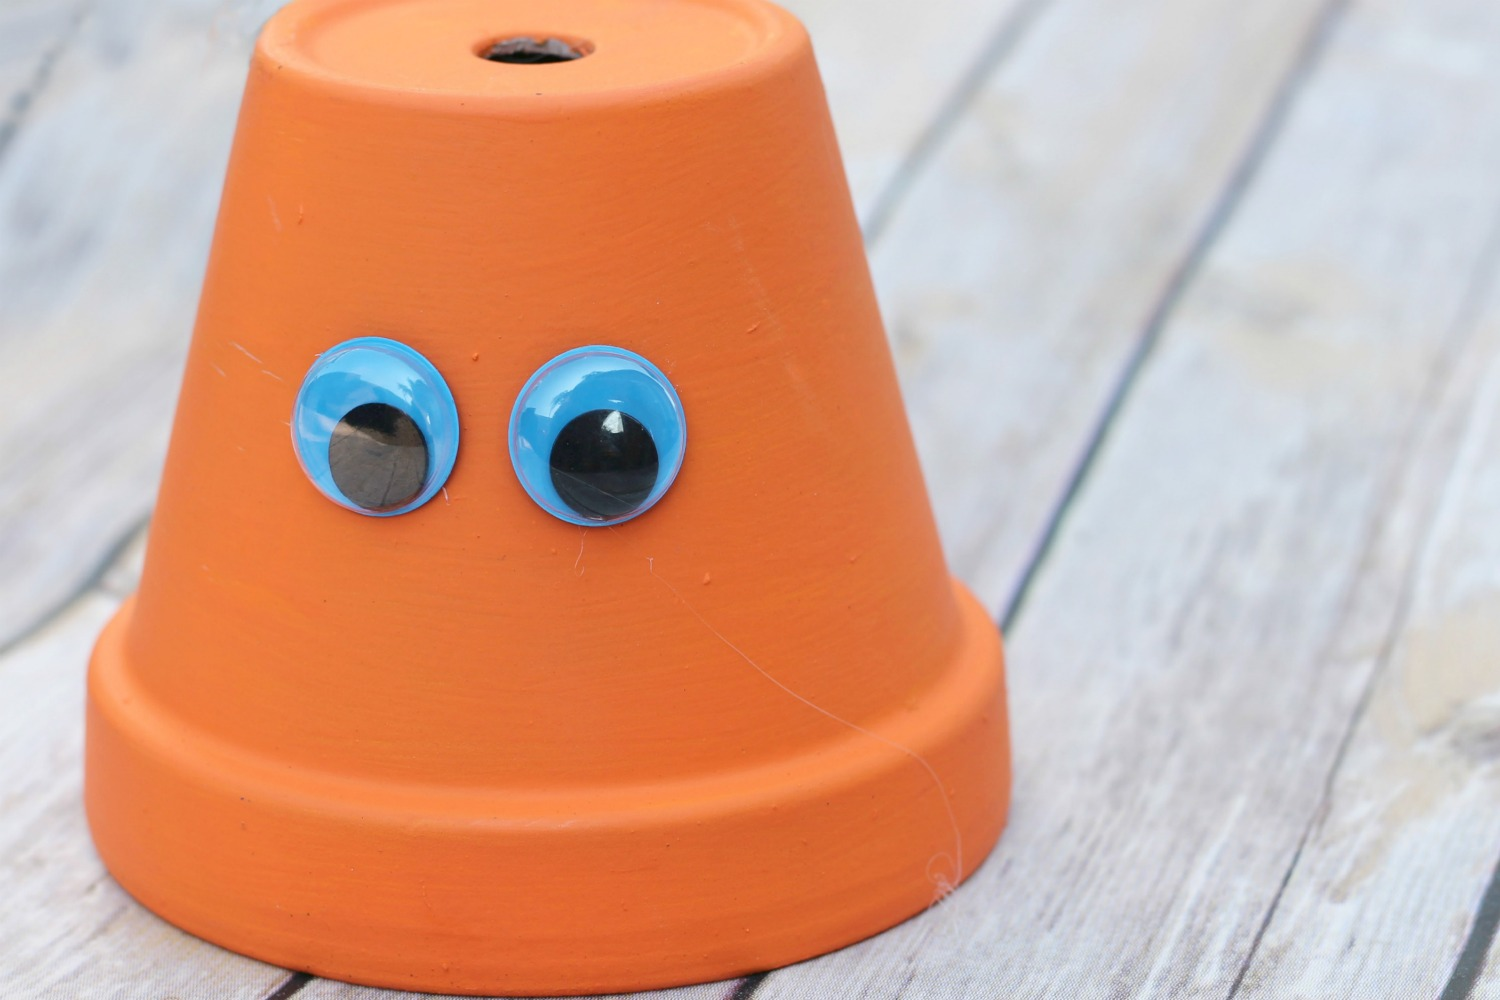 Enjoy the last few days of summer crafting with your children. Start with this fun Finding Dory Hank craft.